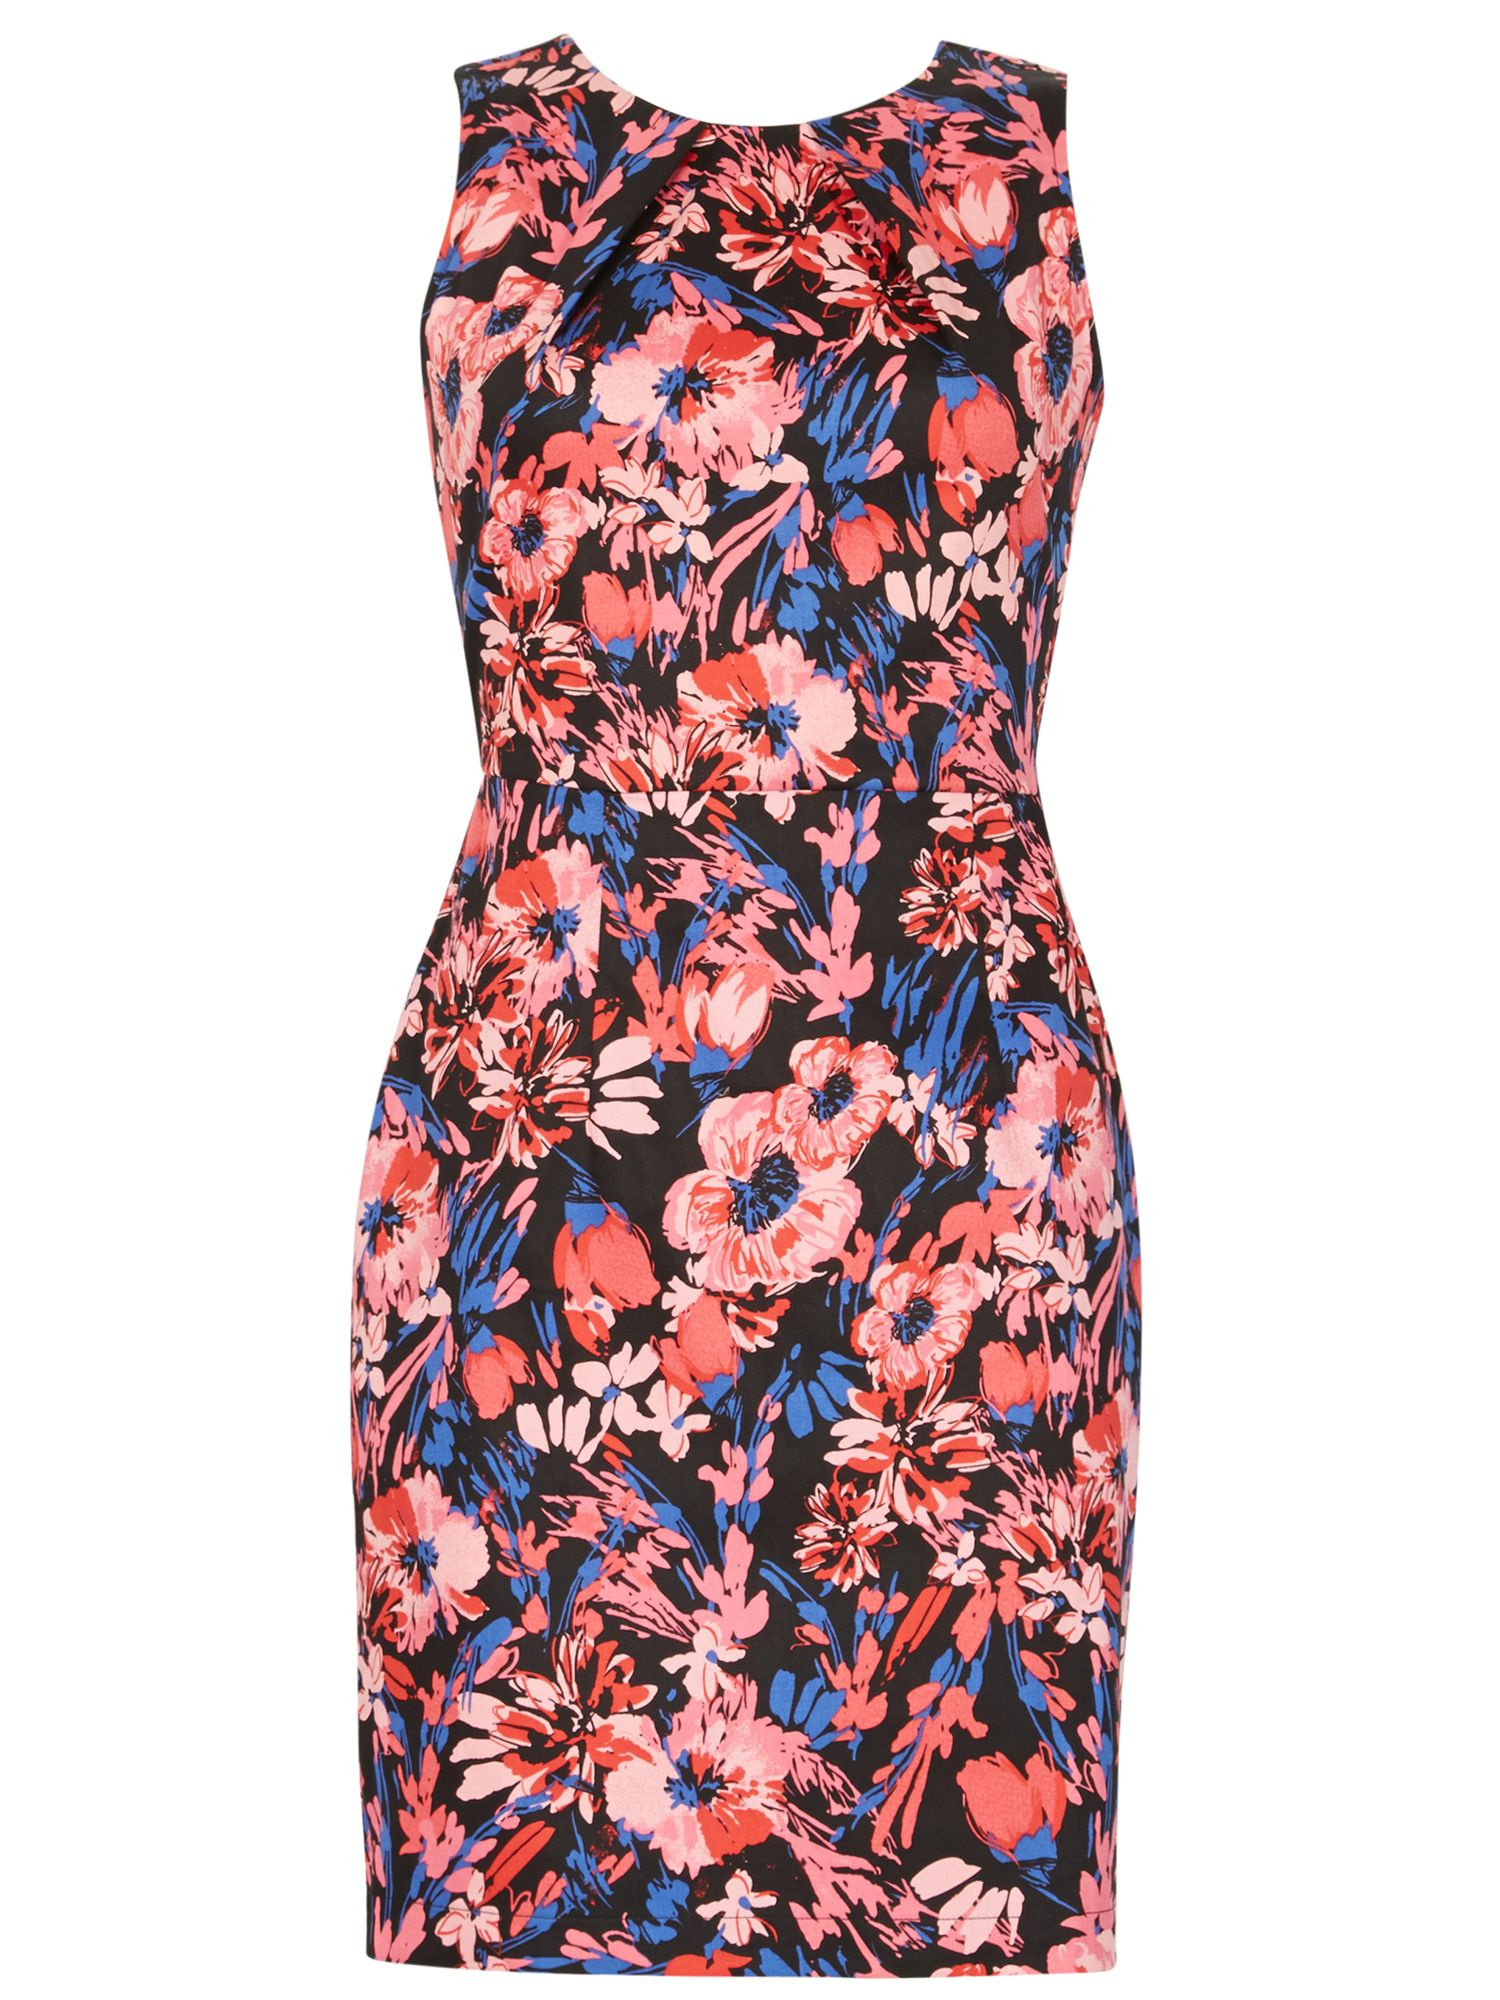 Izabel London Floral Tailored Dress, Multi-Coloured